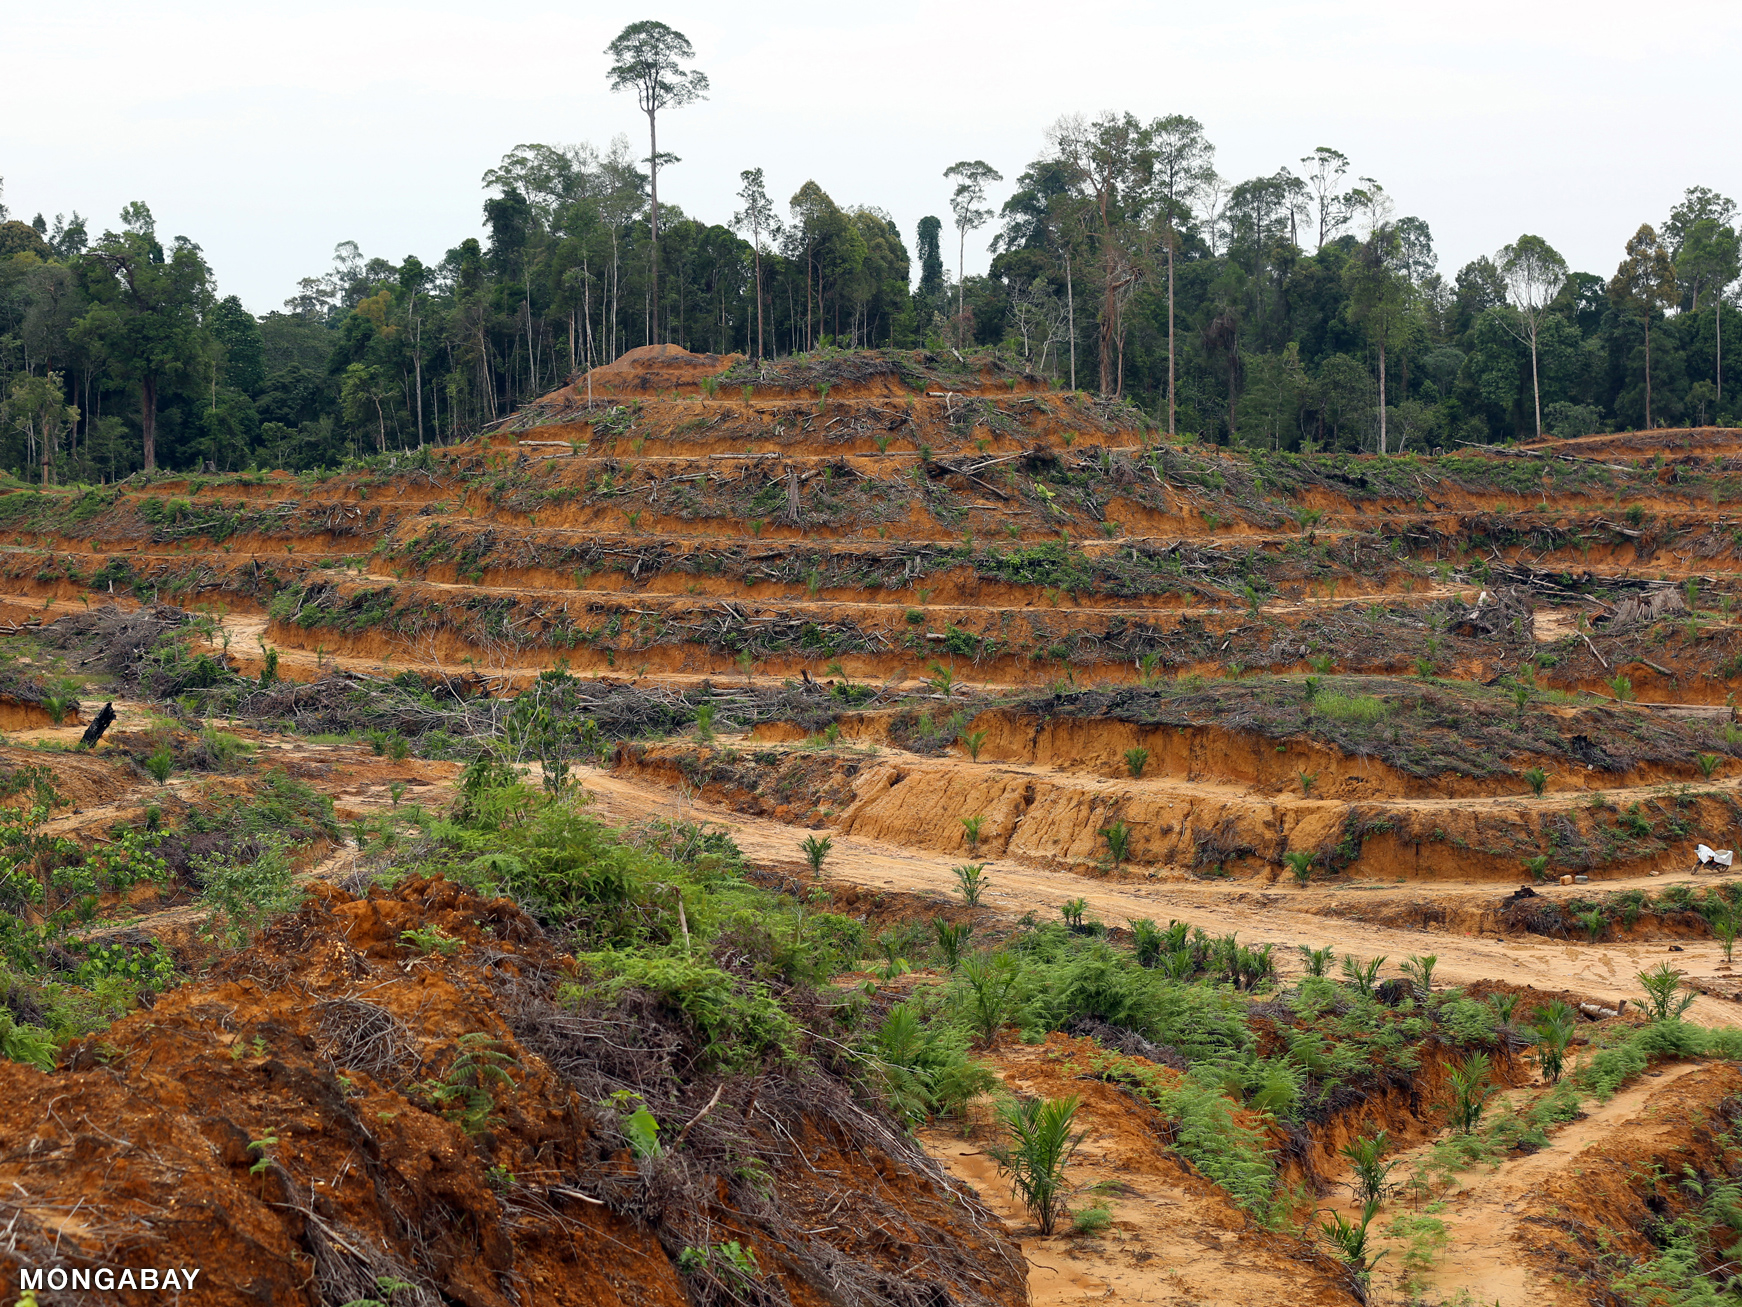 Why are rainforests being destroyed?